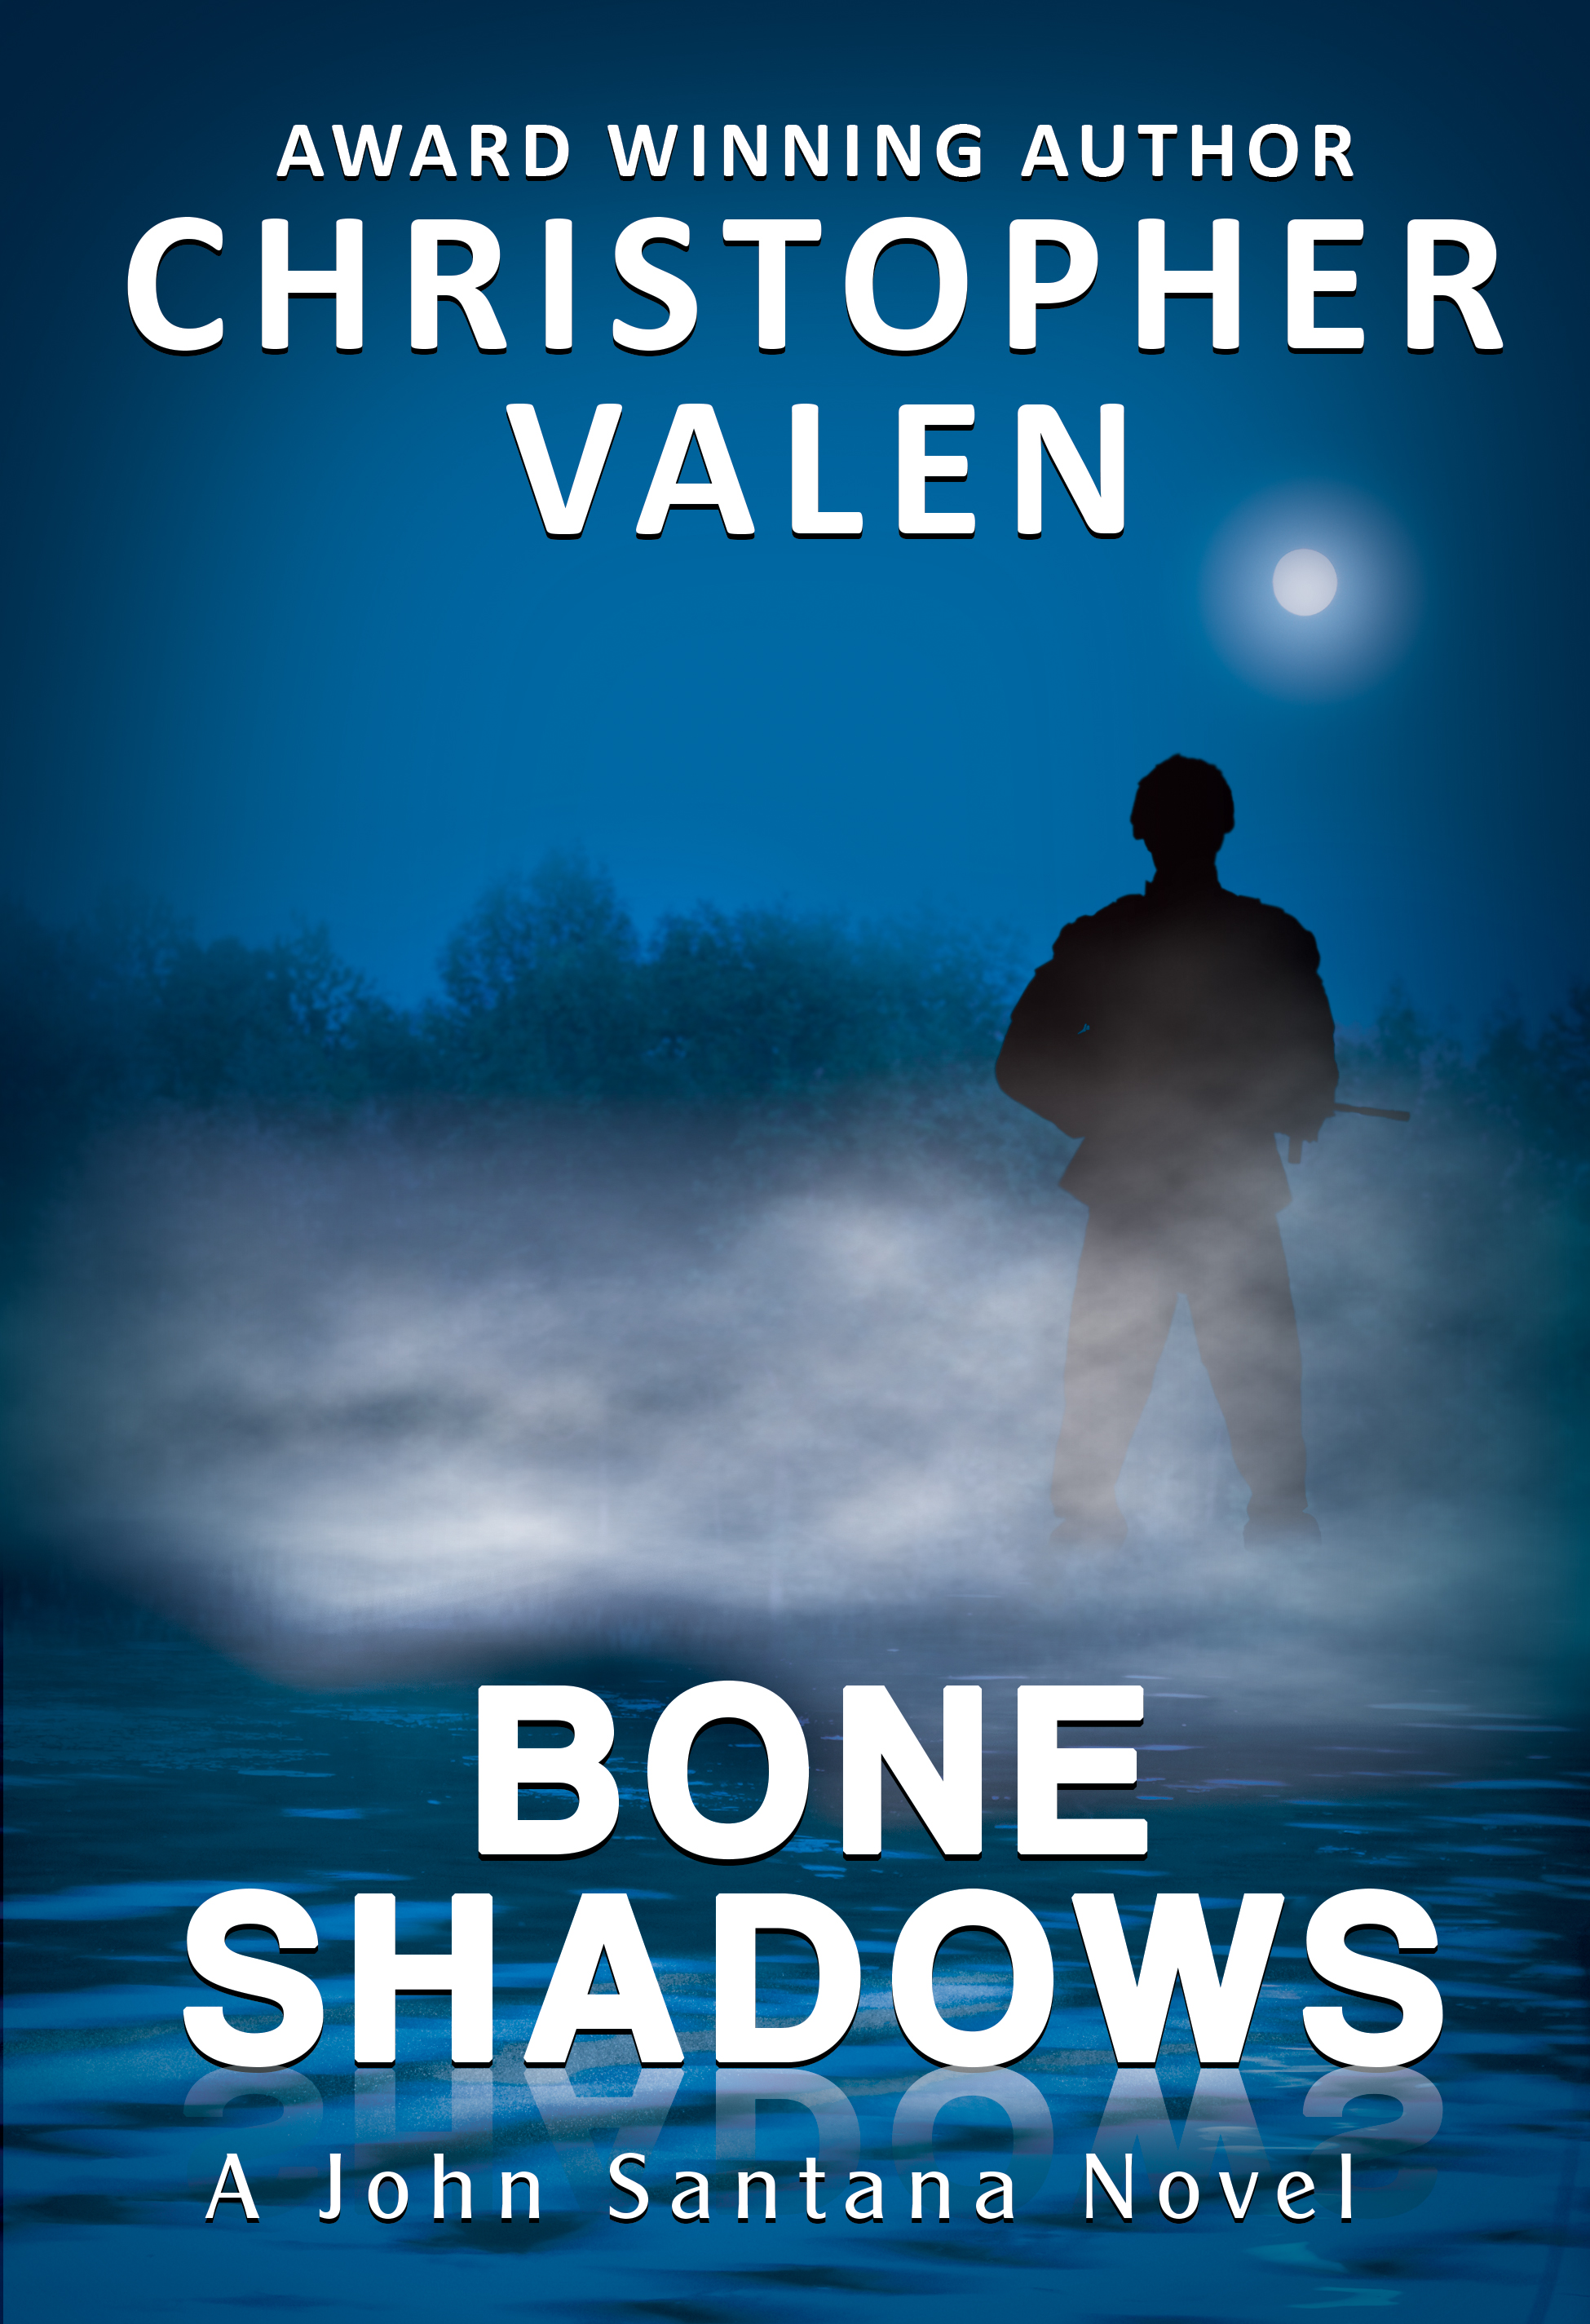 Bone Shadows